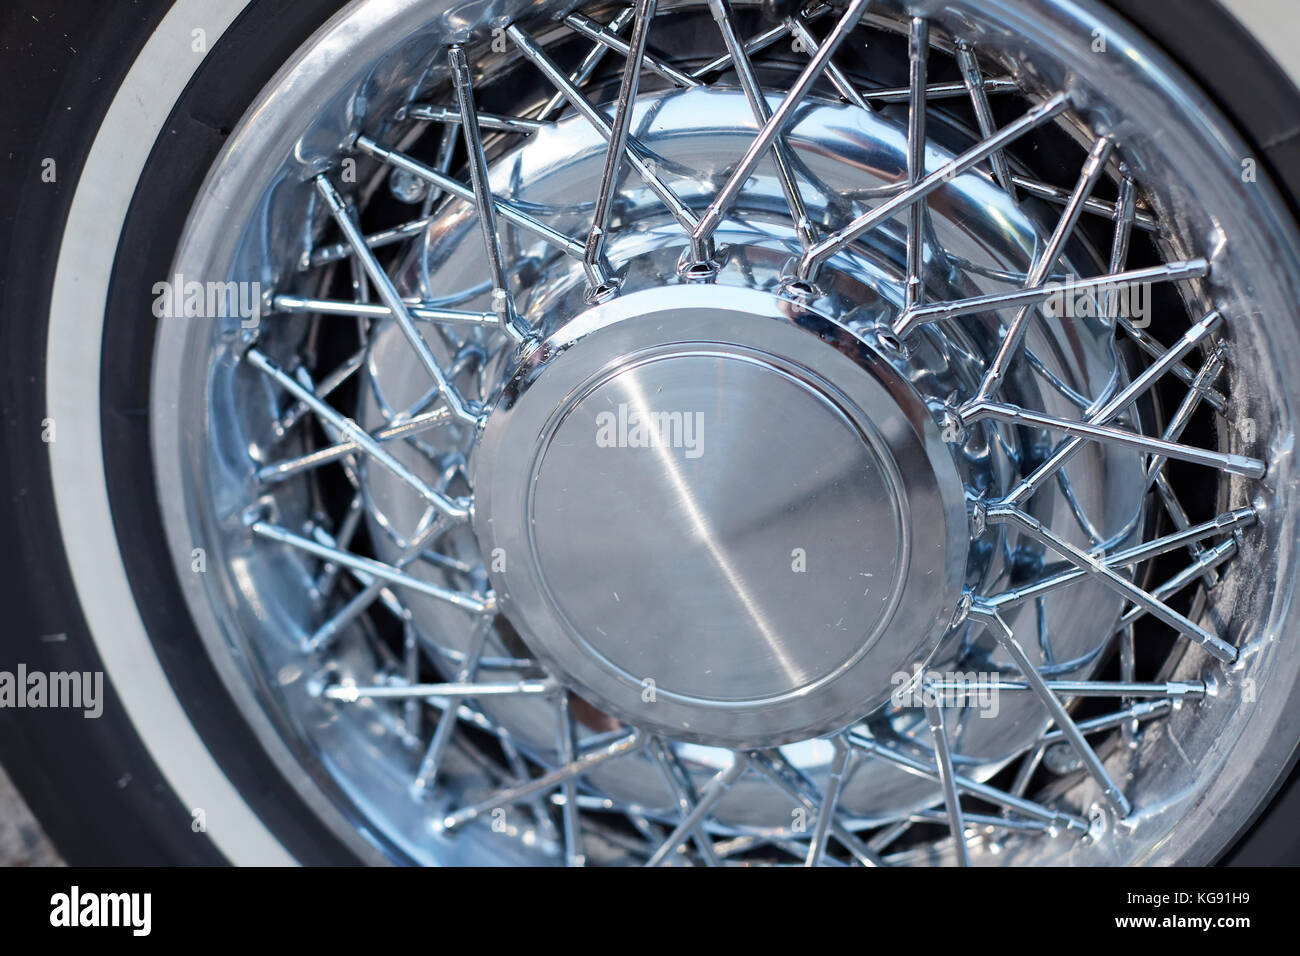 prestige ally wheels with a spoke design on a vintage classic car in a close up